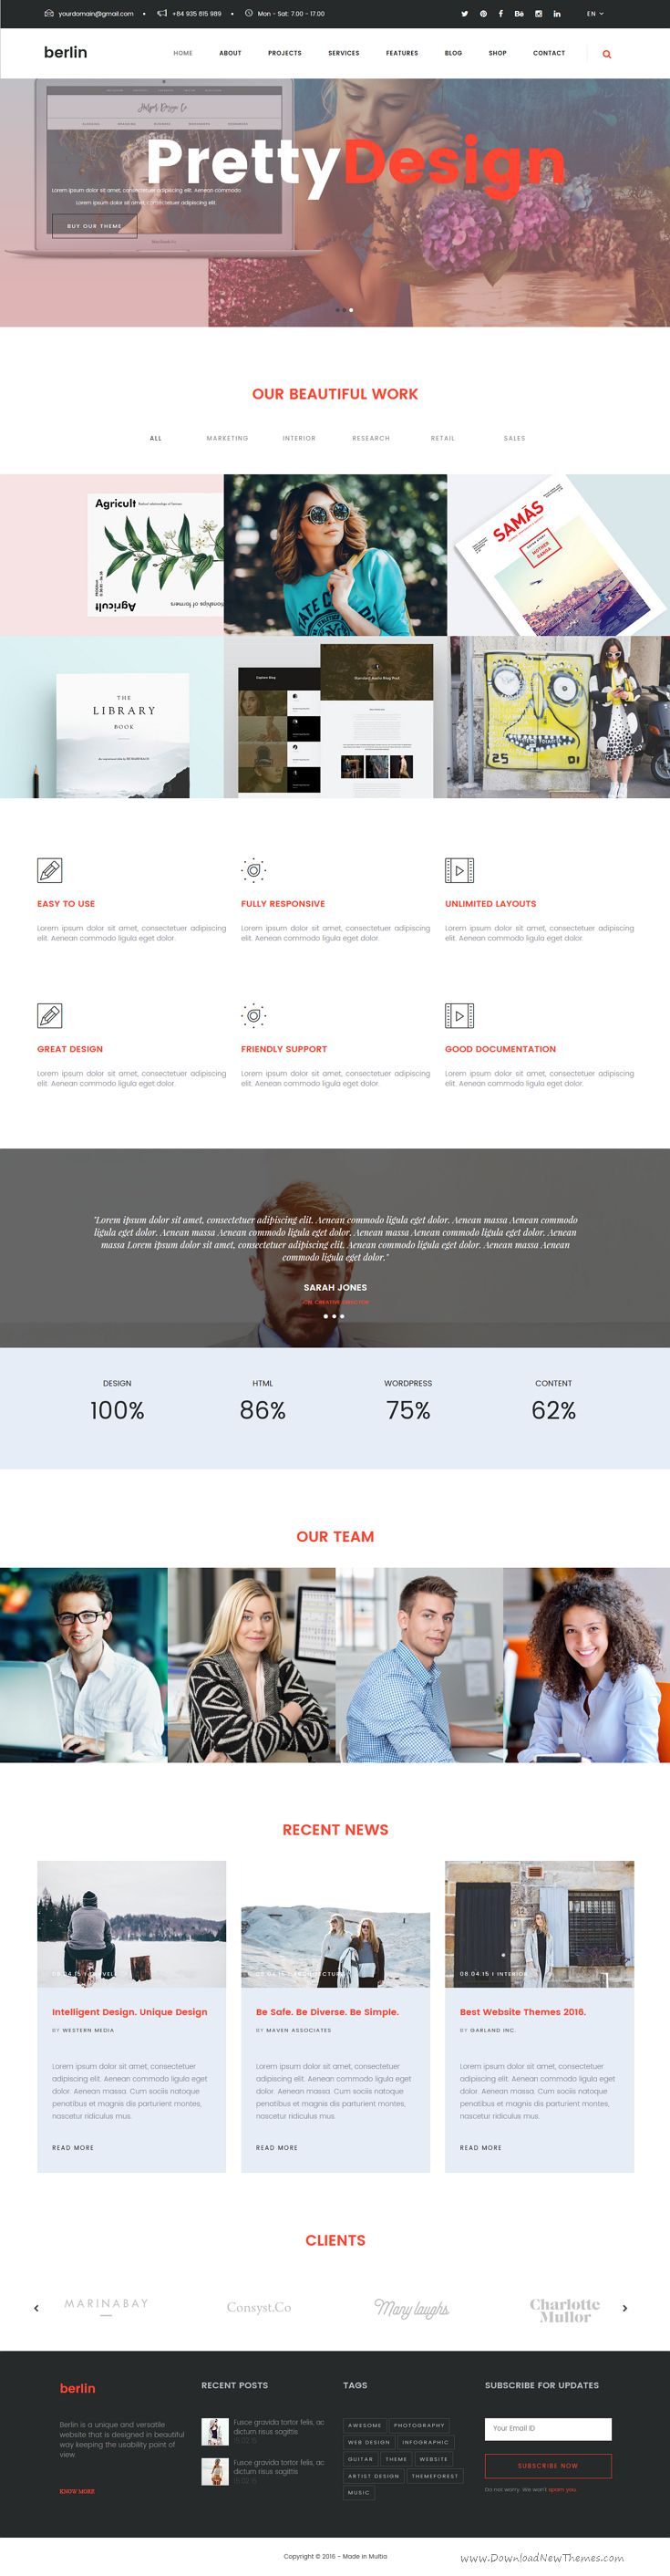 Berlin is modern and unique 12 in 1 Bootstrap based HTML 5 template for #business, education, #agency, portfolio or resume #website. Download Now!